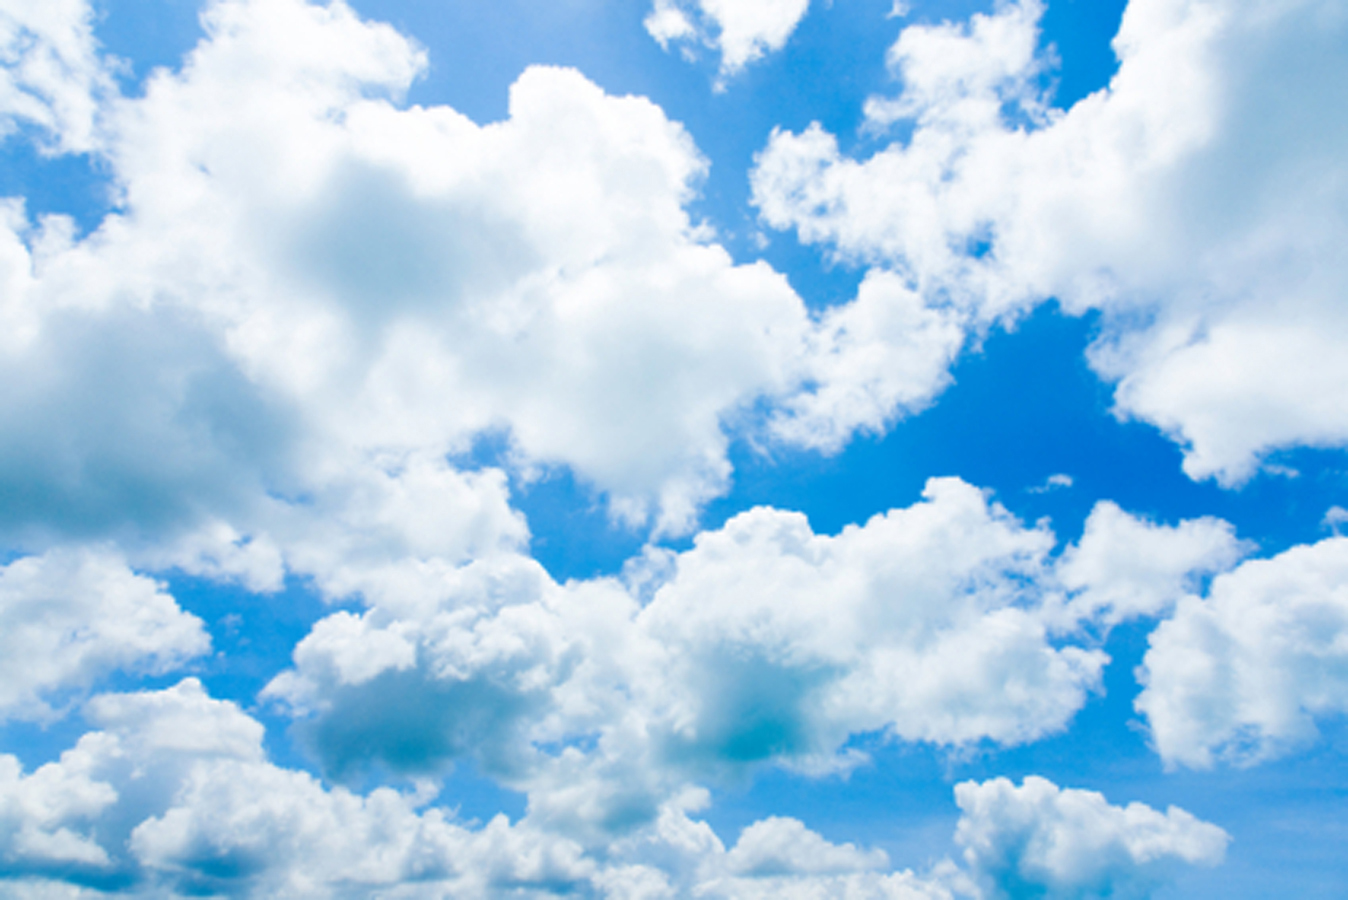 HQ Cloud Wallpapers | File 521.8Kb